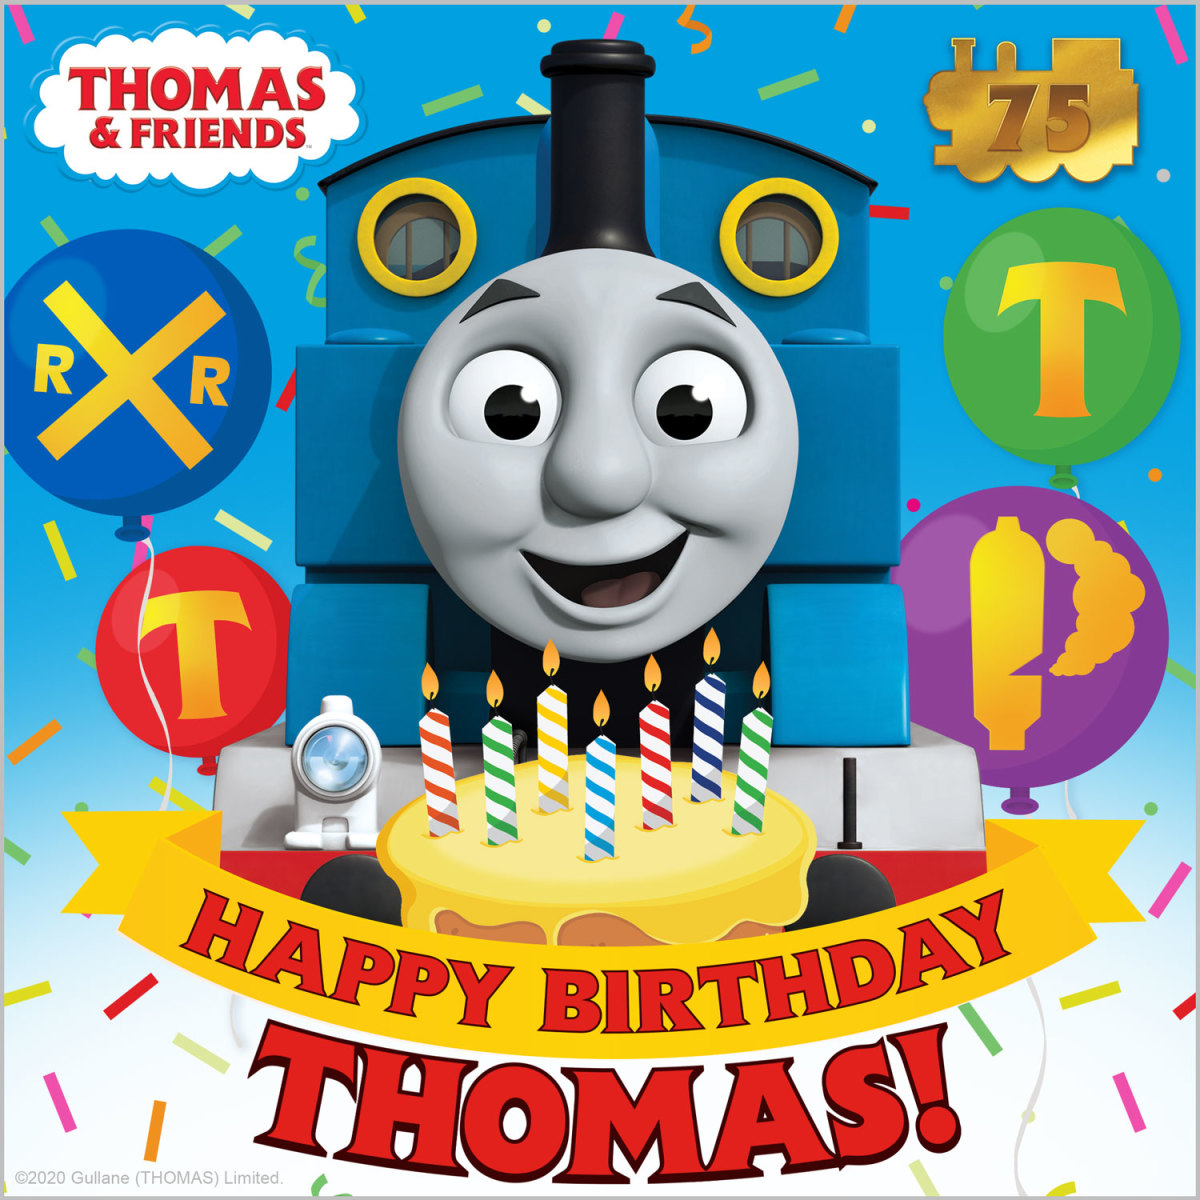 Thomas the Train Celebrates a Birthday